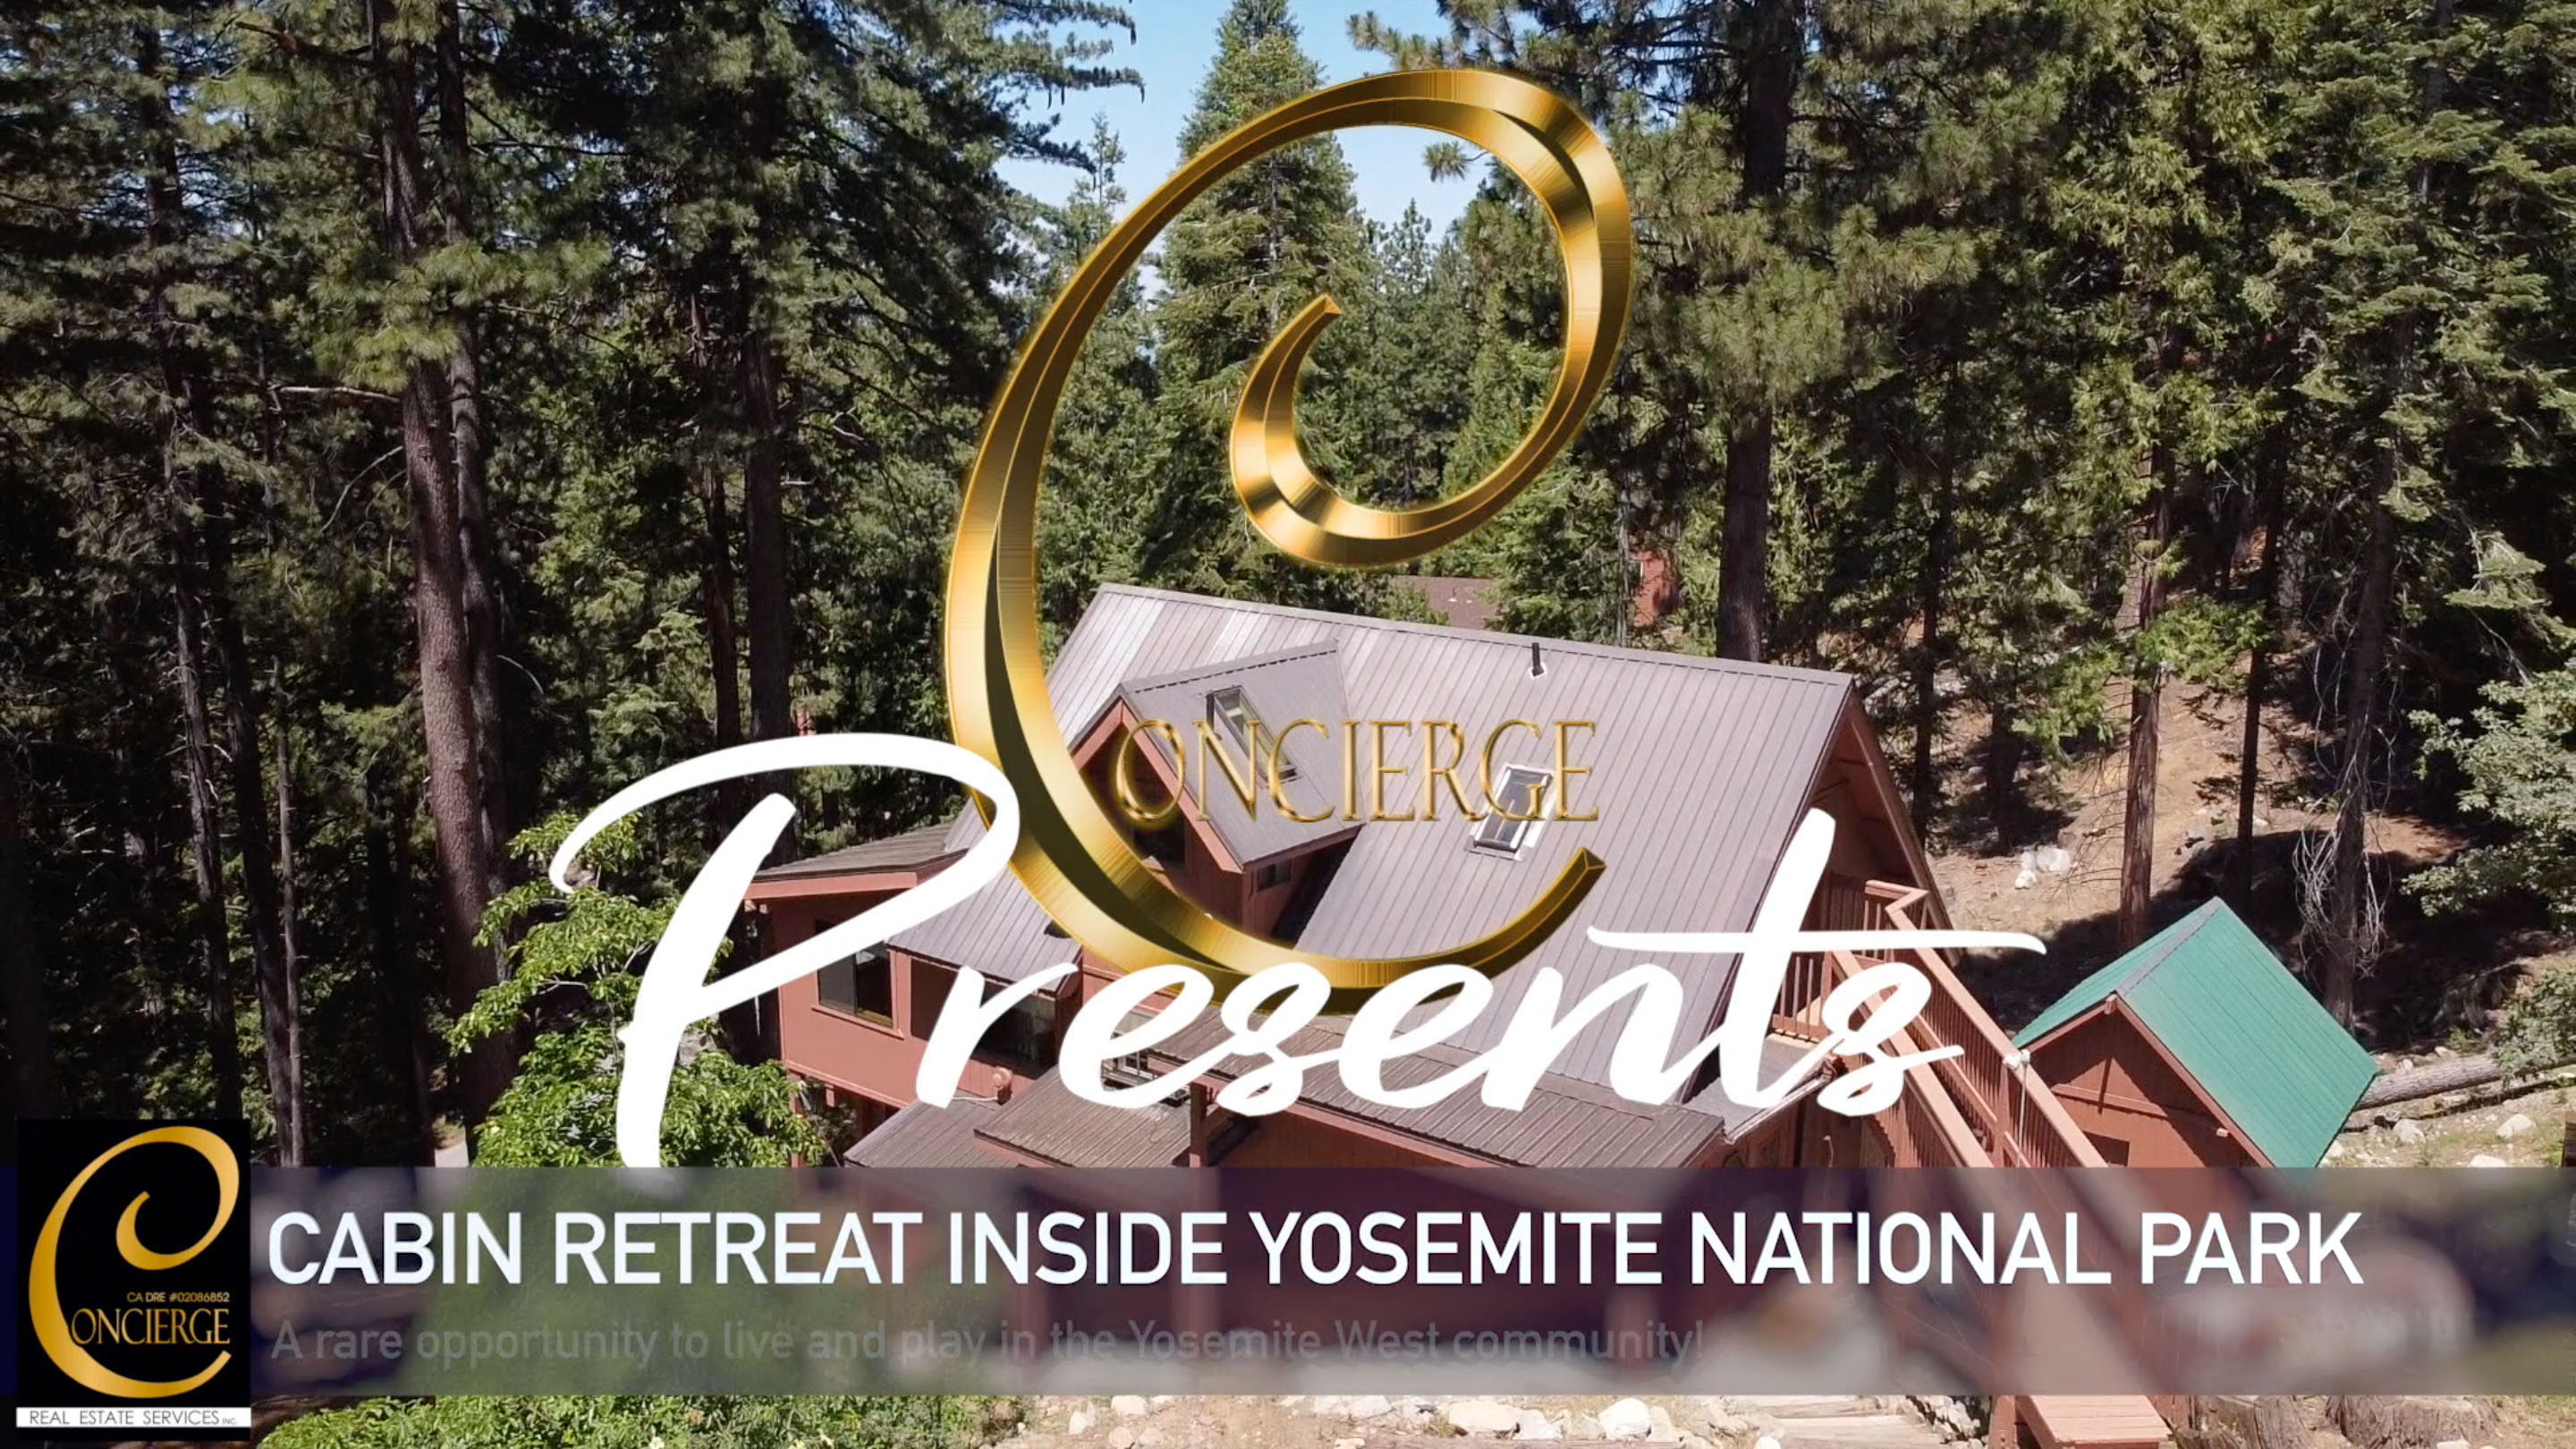 Concierge Presents... Cabin Retreat INSIDE Yosemite National Park